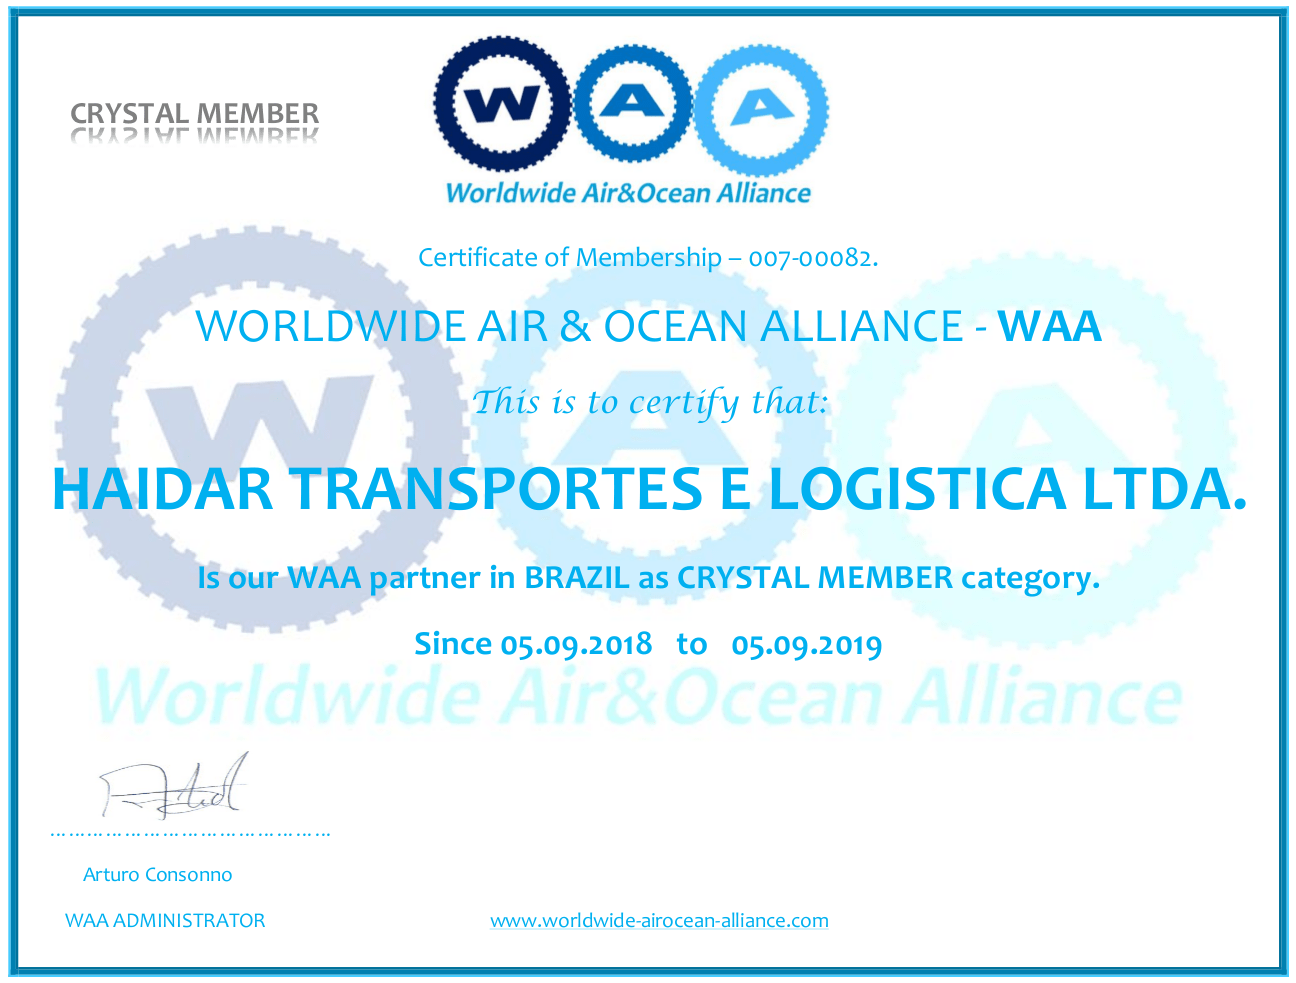 Worldwide Air & Ocean Alliance - WAA